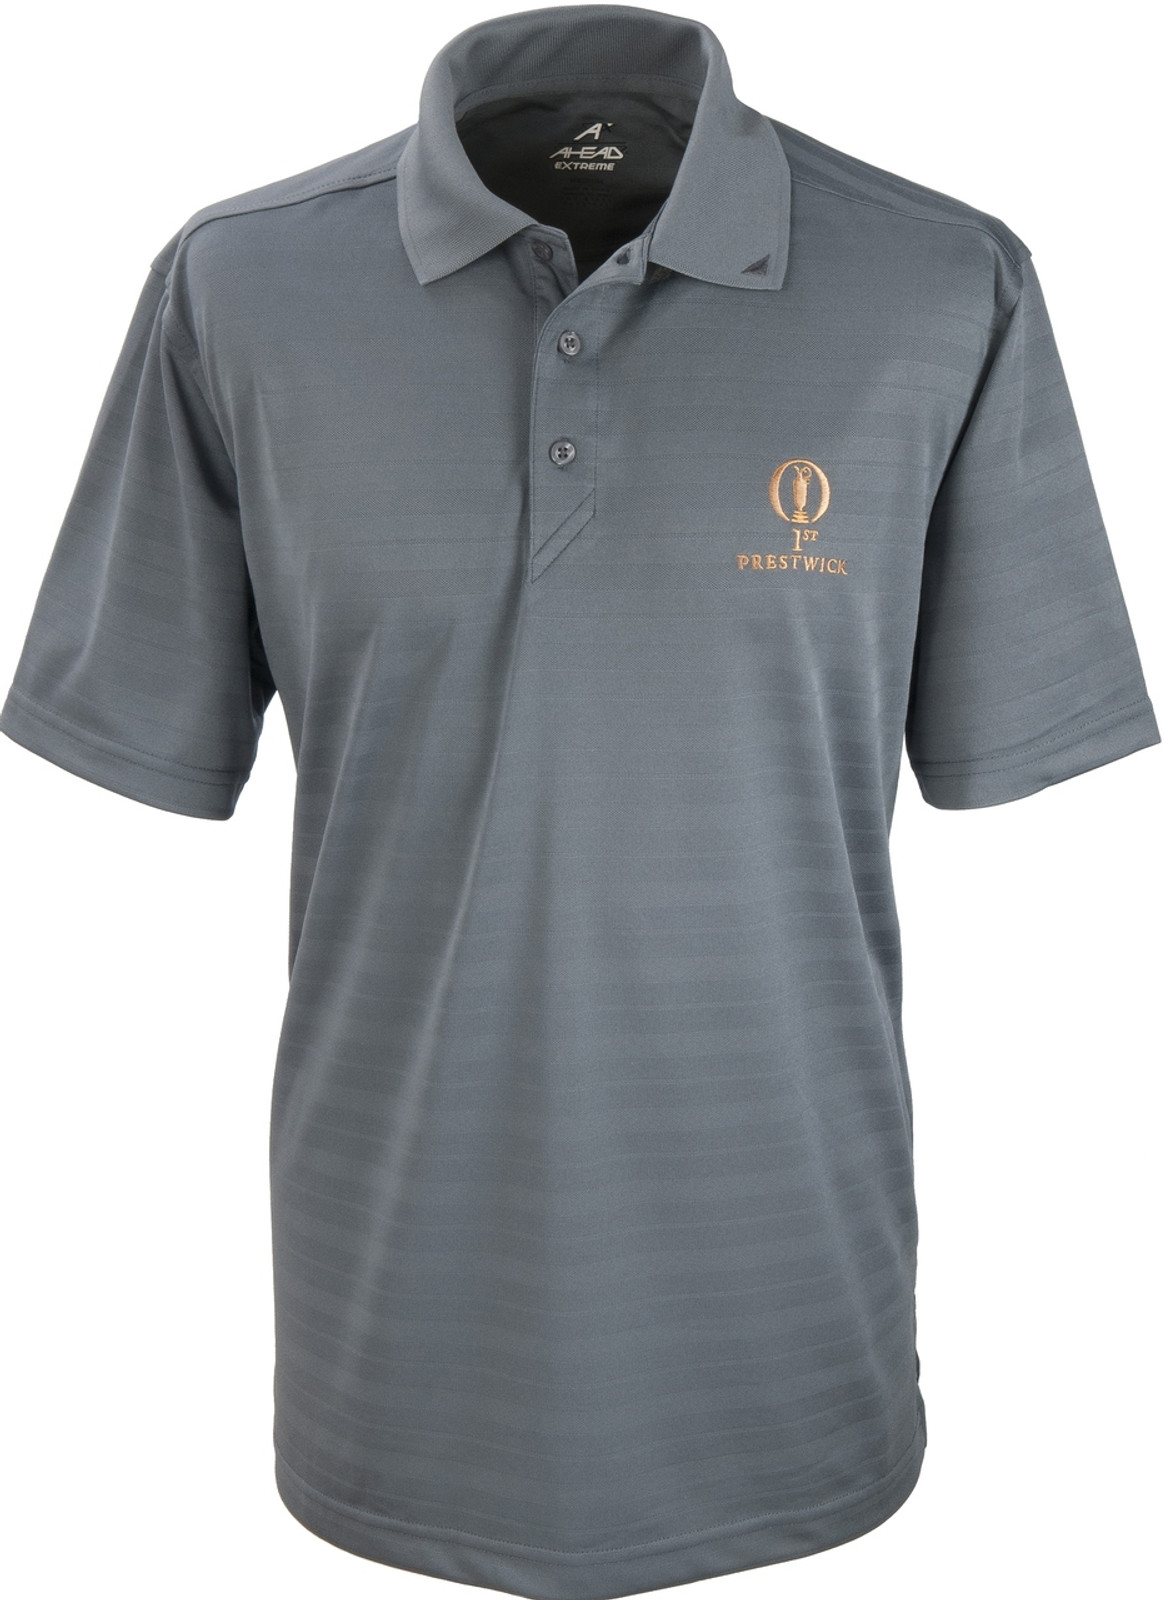 Prestwick Collection Ahead Mens Plain Polo - Steel